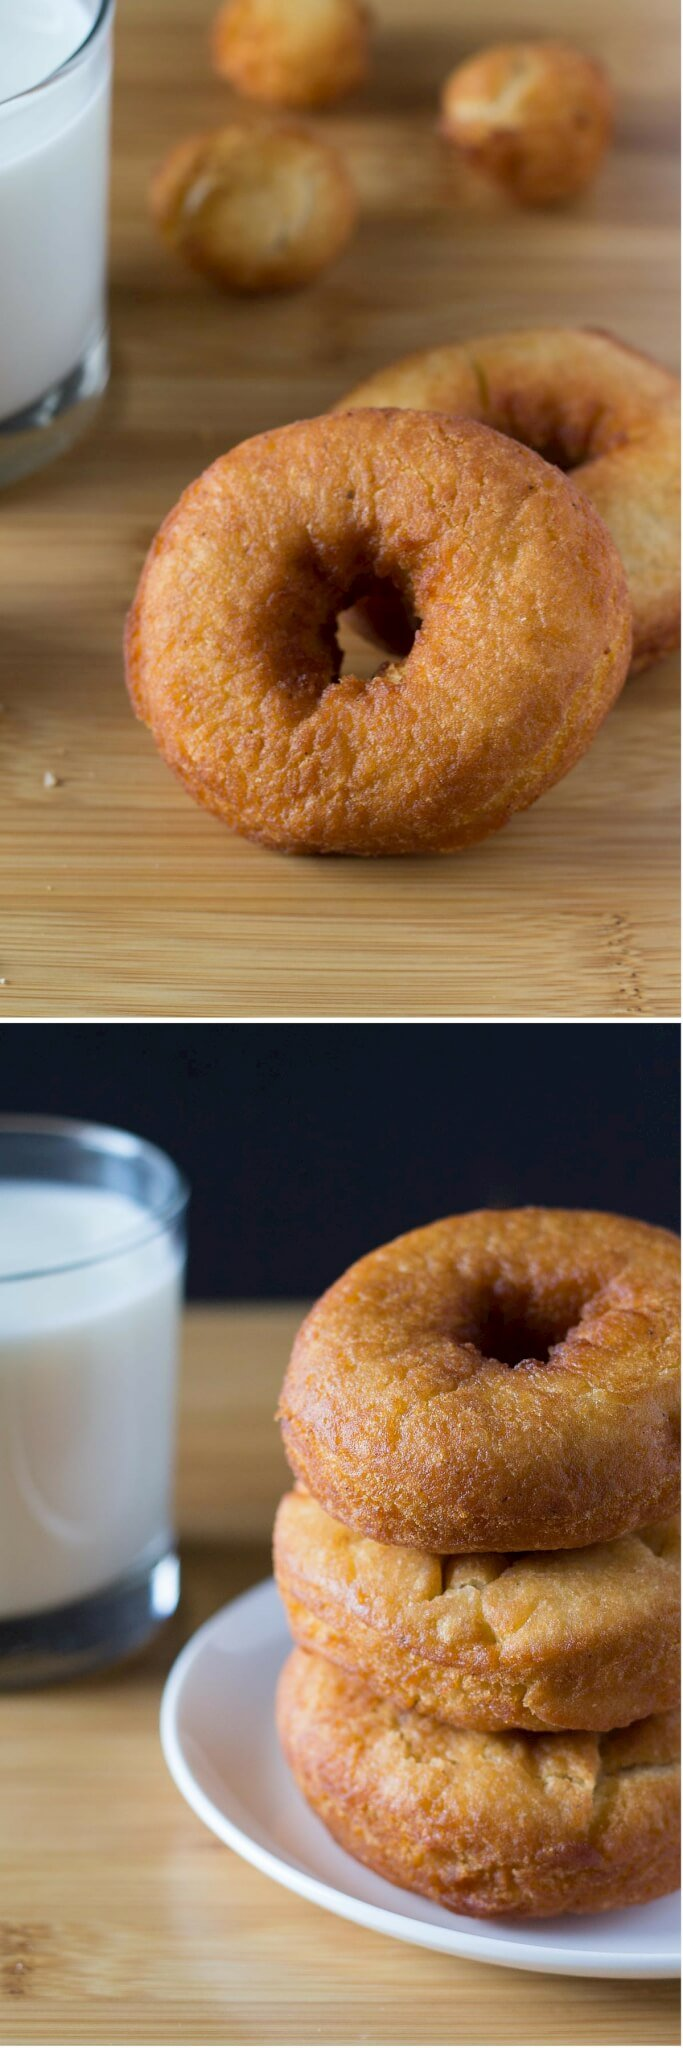 Ready for the MOST delicious doughnuts? Make these Old-Fashioned Cake Doughnuts at home and turn your kitchen into the ultimate bakery!